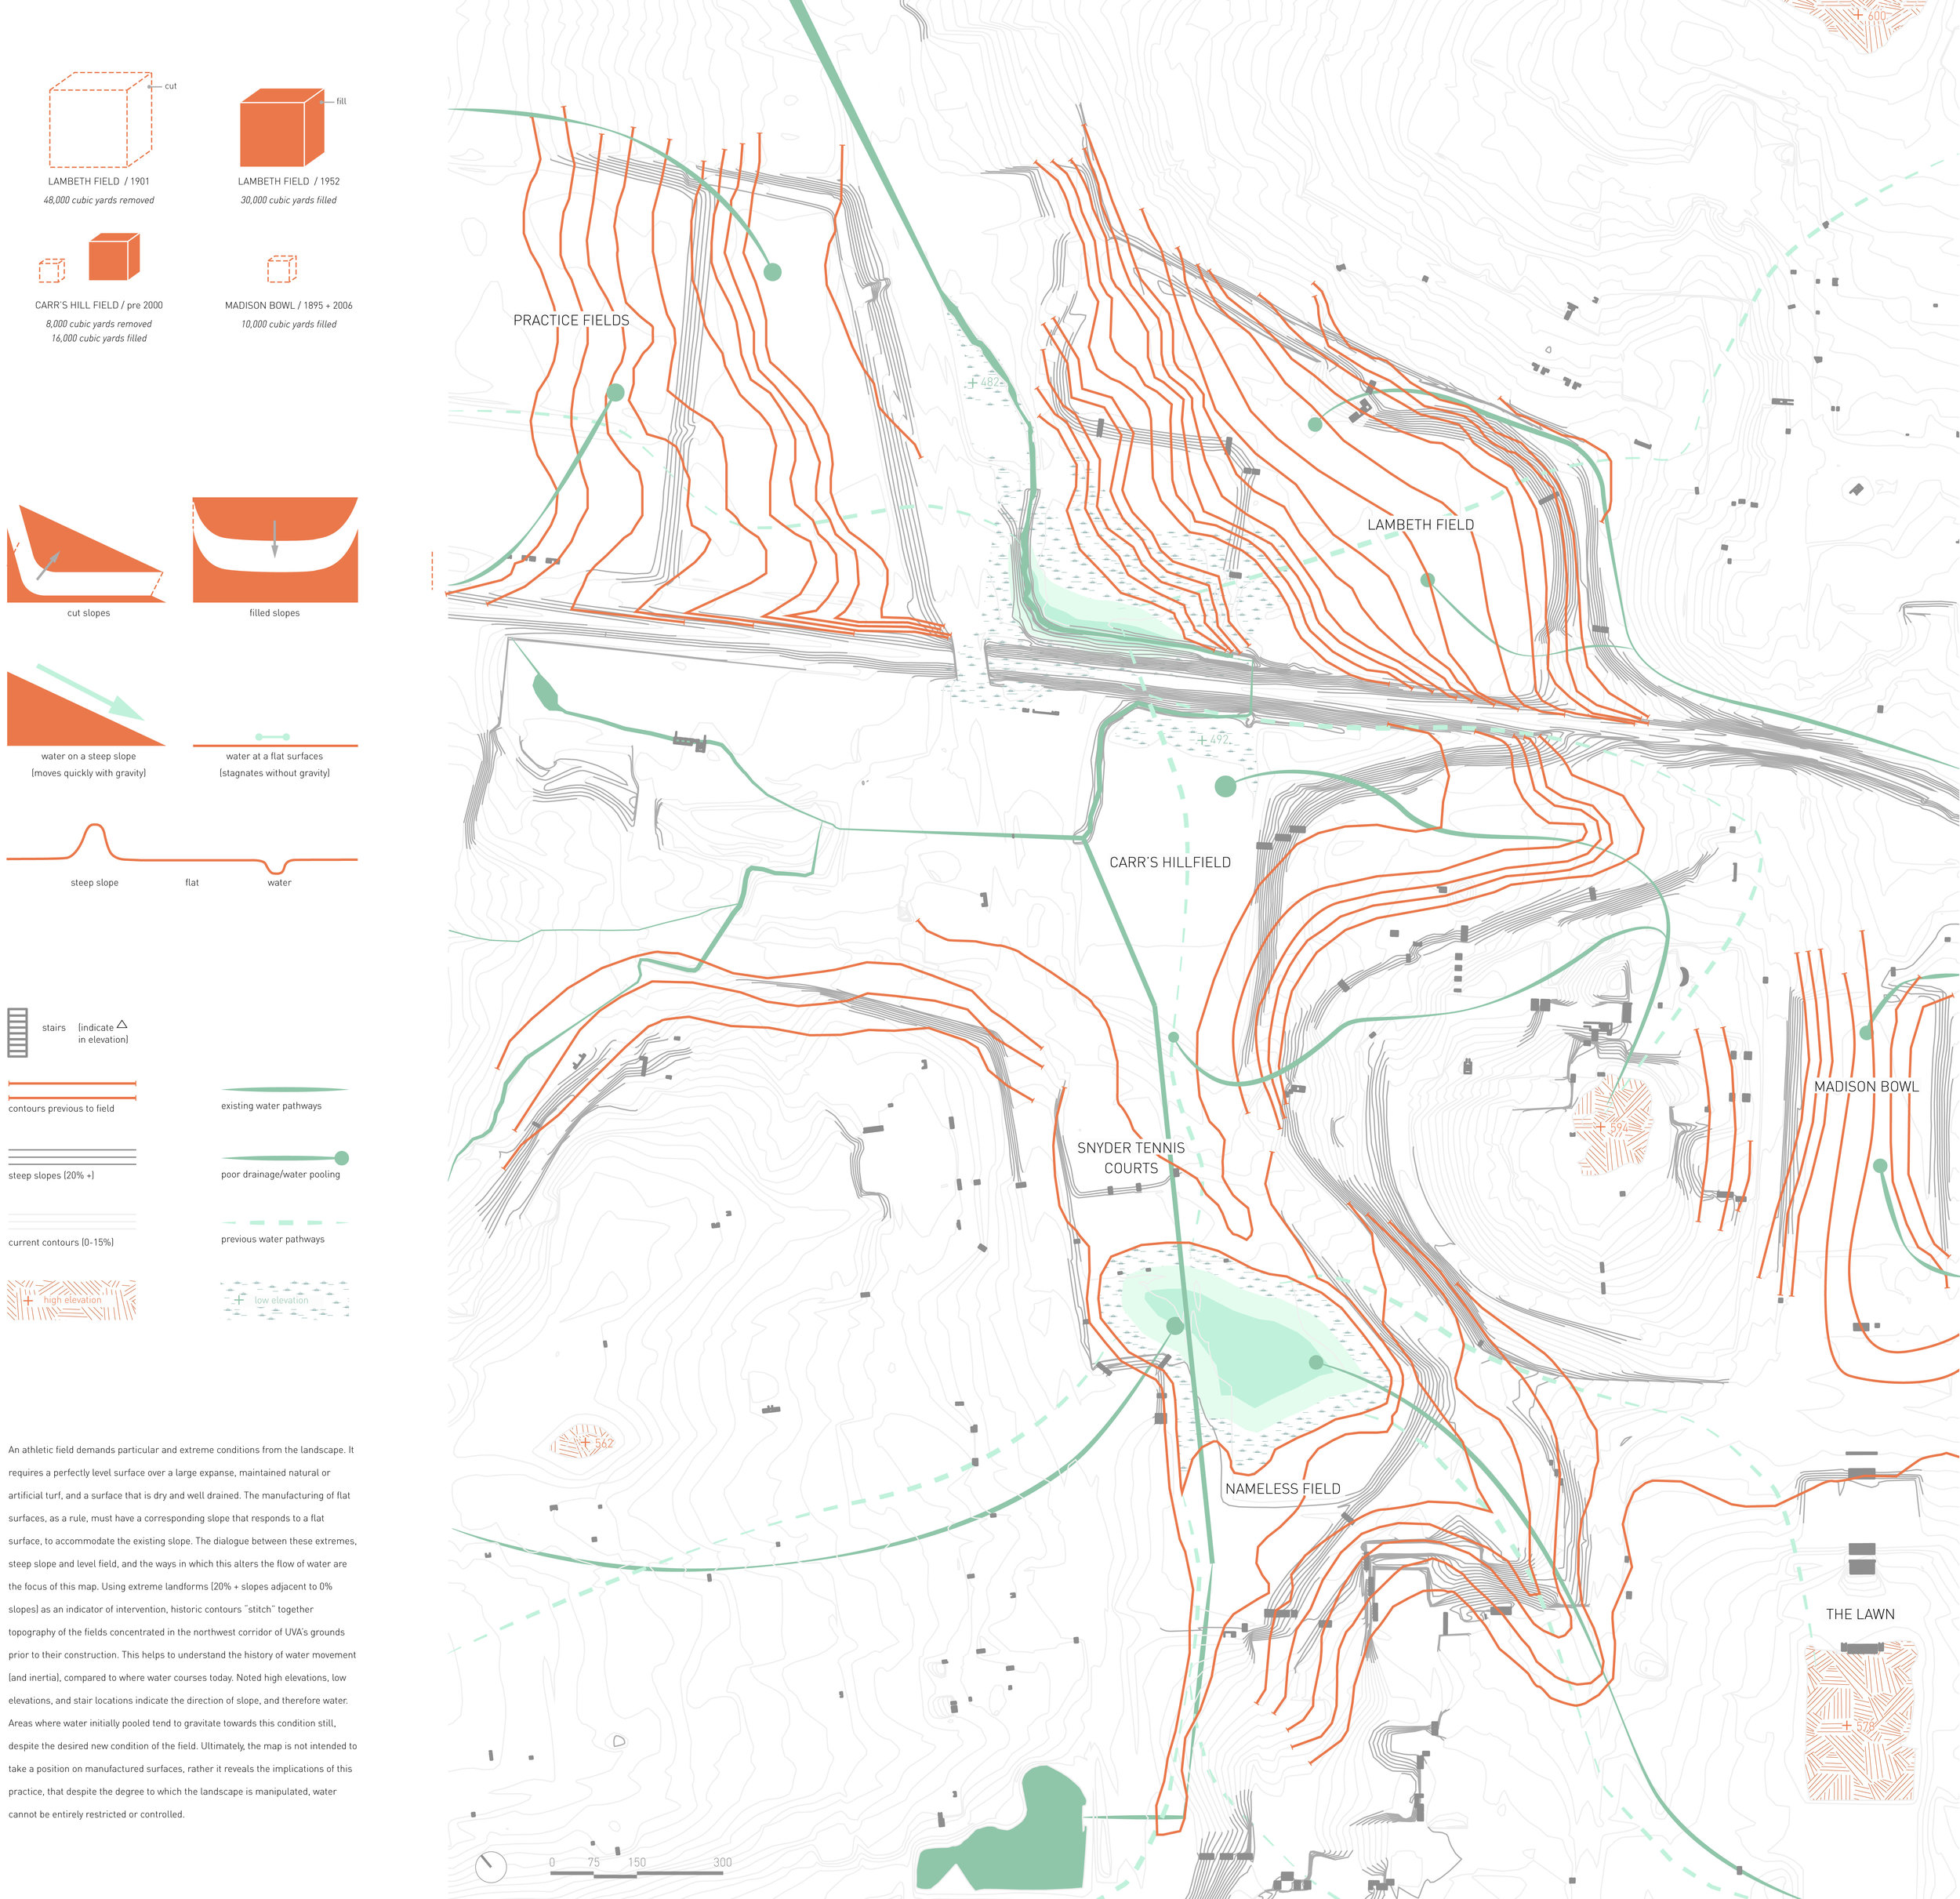 A study of slopes showing the negotiation between historic and contemporary topography and water. Significant alteration of the terrain to accommodate roads, buildings and athletic fields has drastically alter the course of water.